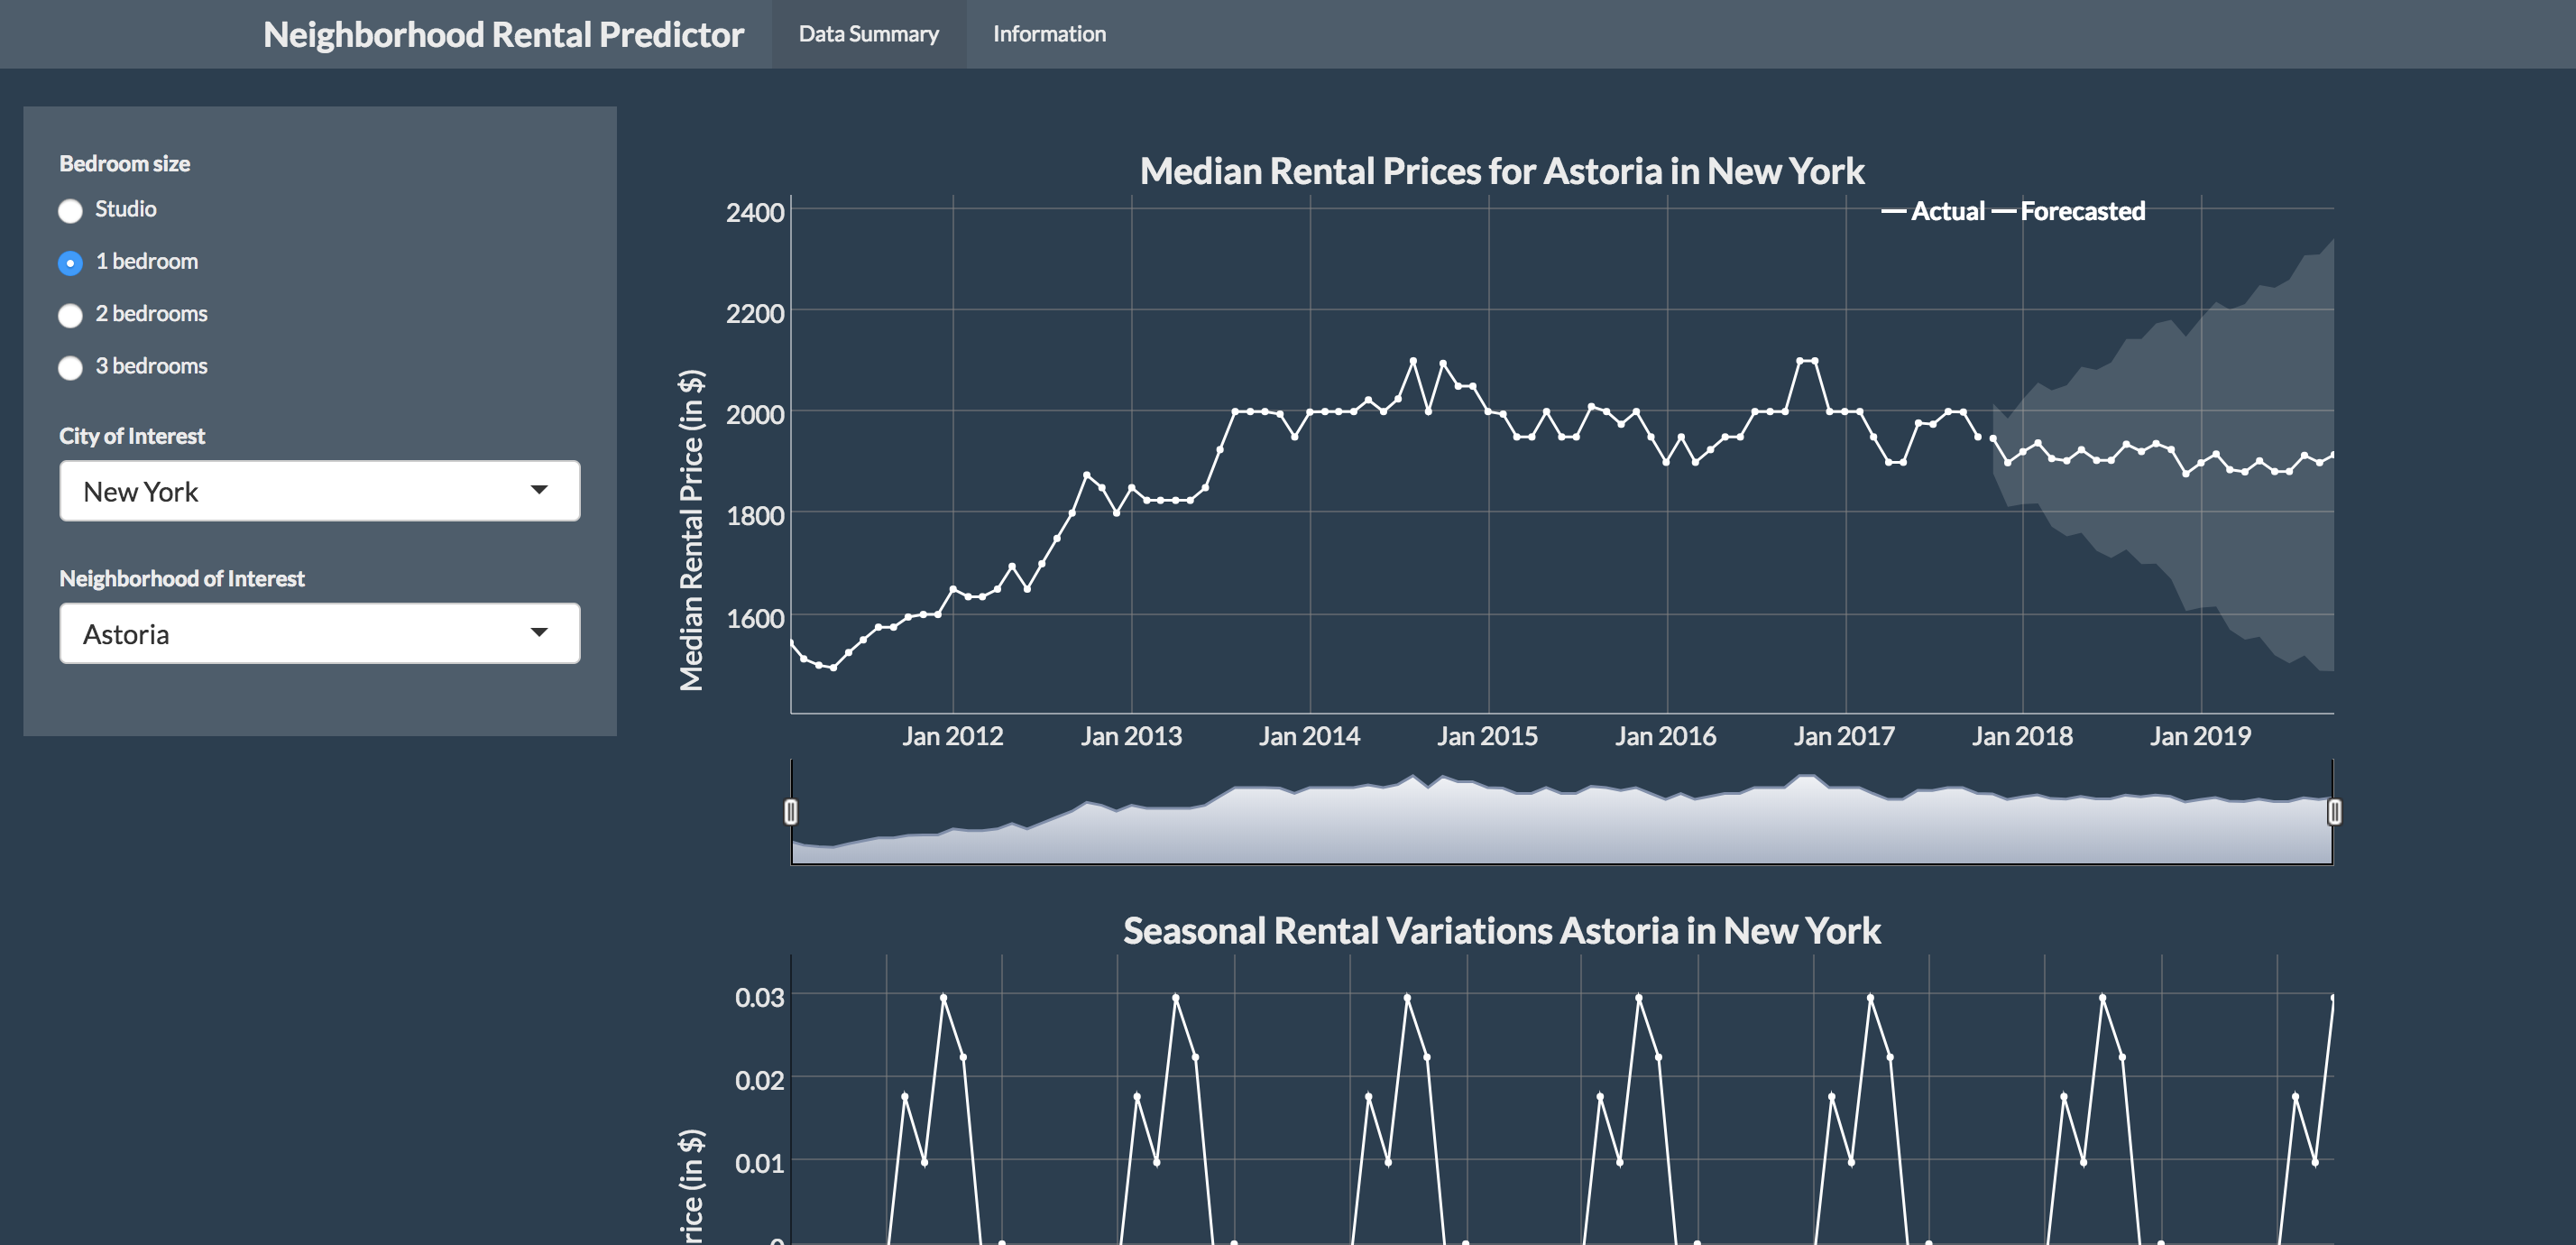 Comparing rental prices in the US market